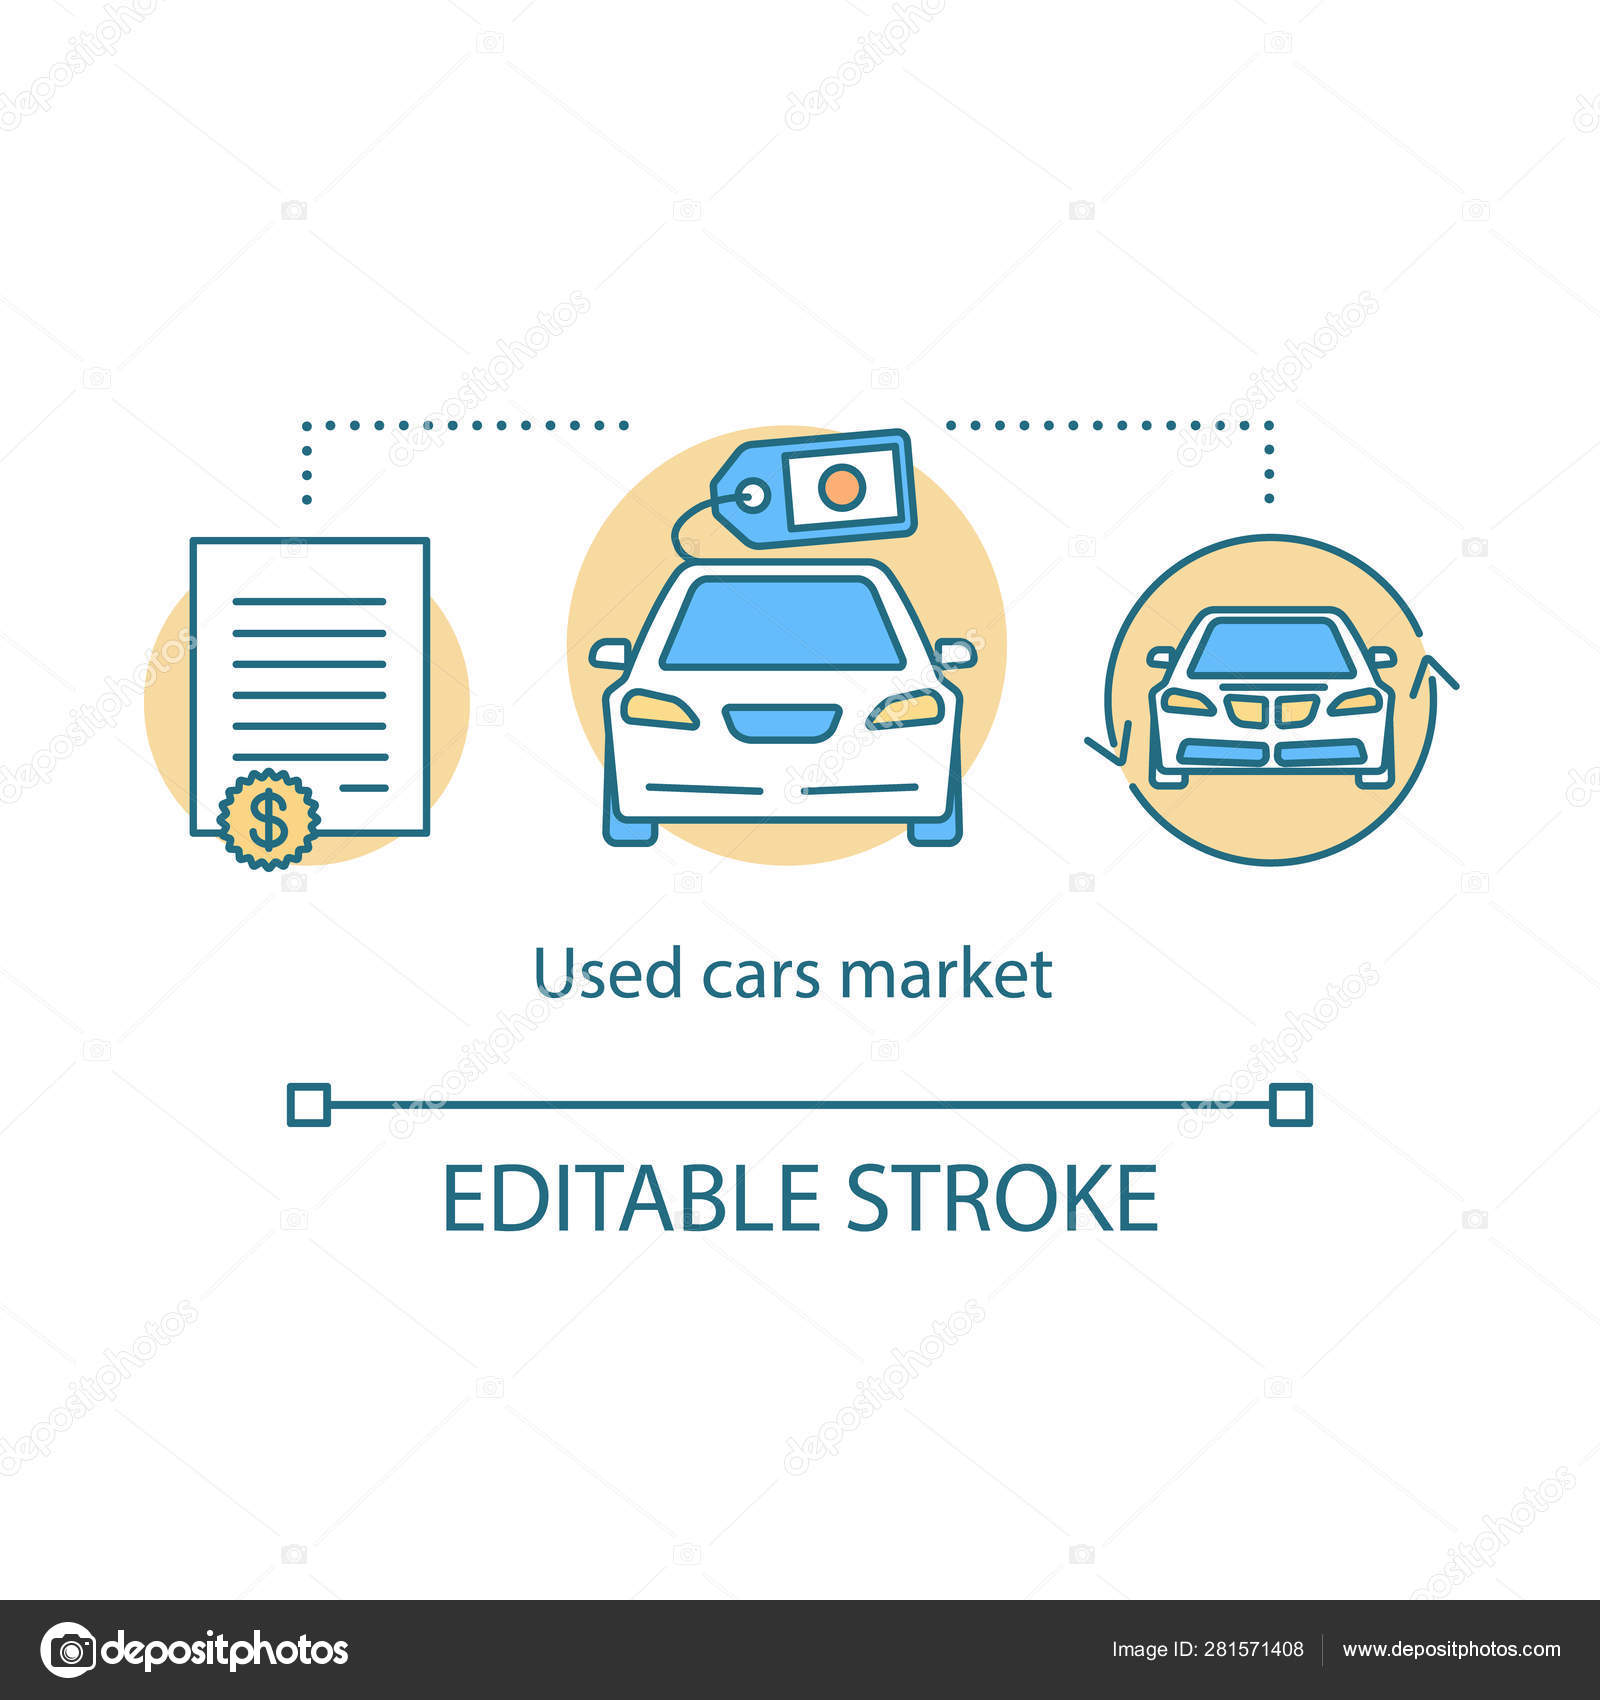 Used cars market concept icon  Taxi ordering idea thin line